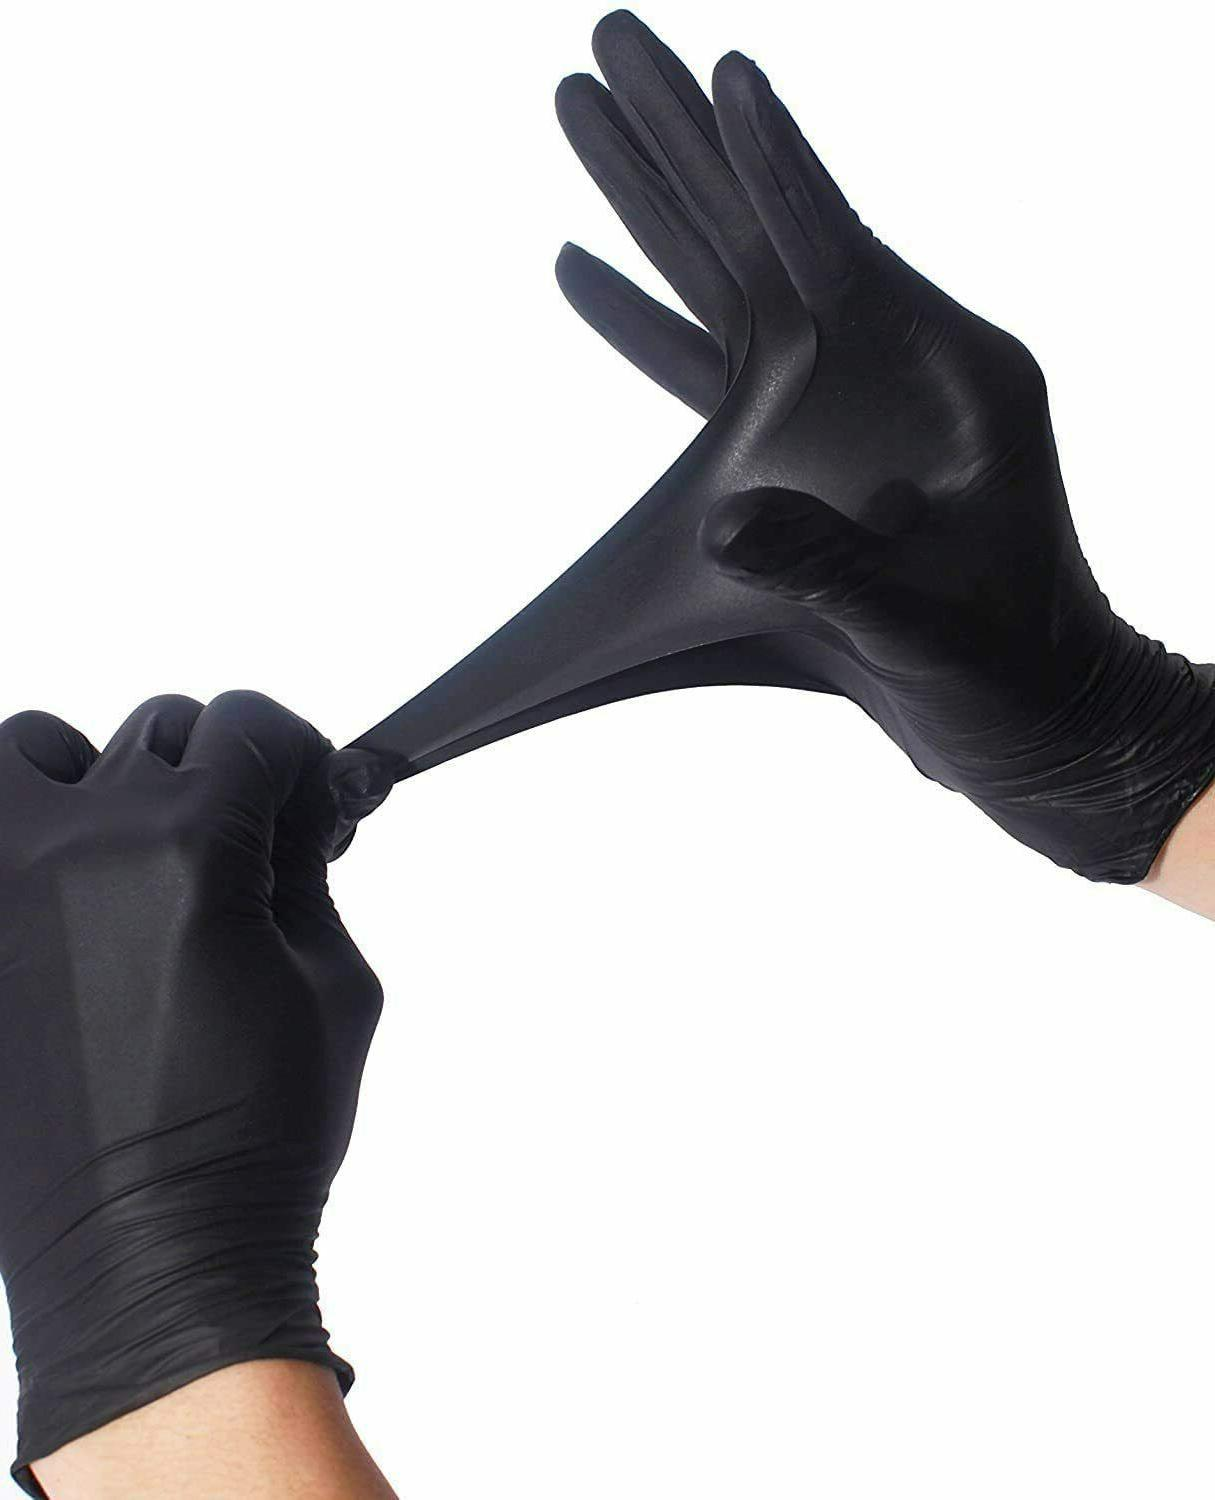 50 Black Nitrile-PVC & free Gloves Size L XL in stock